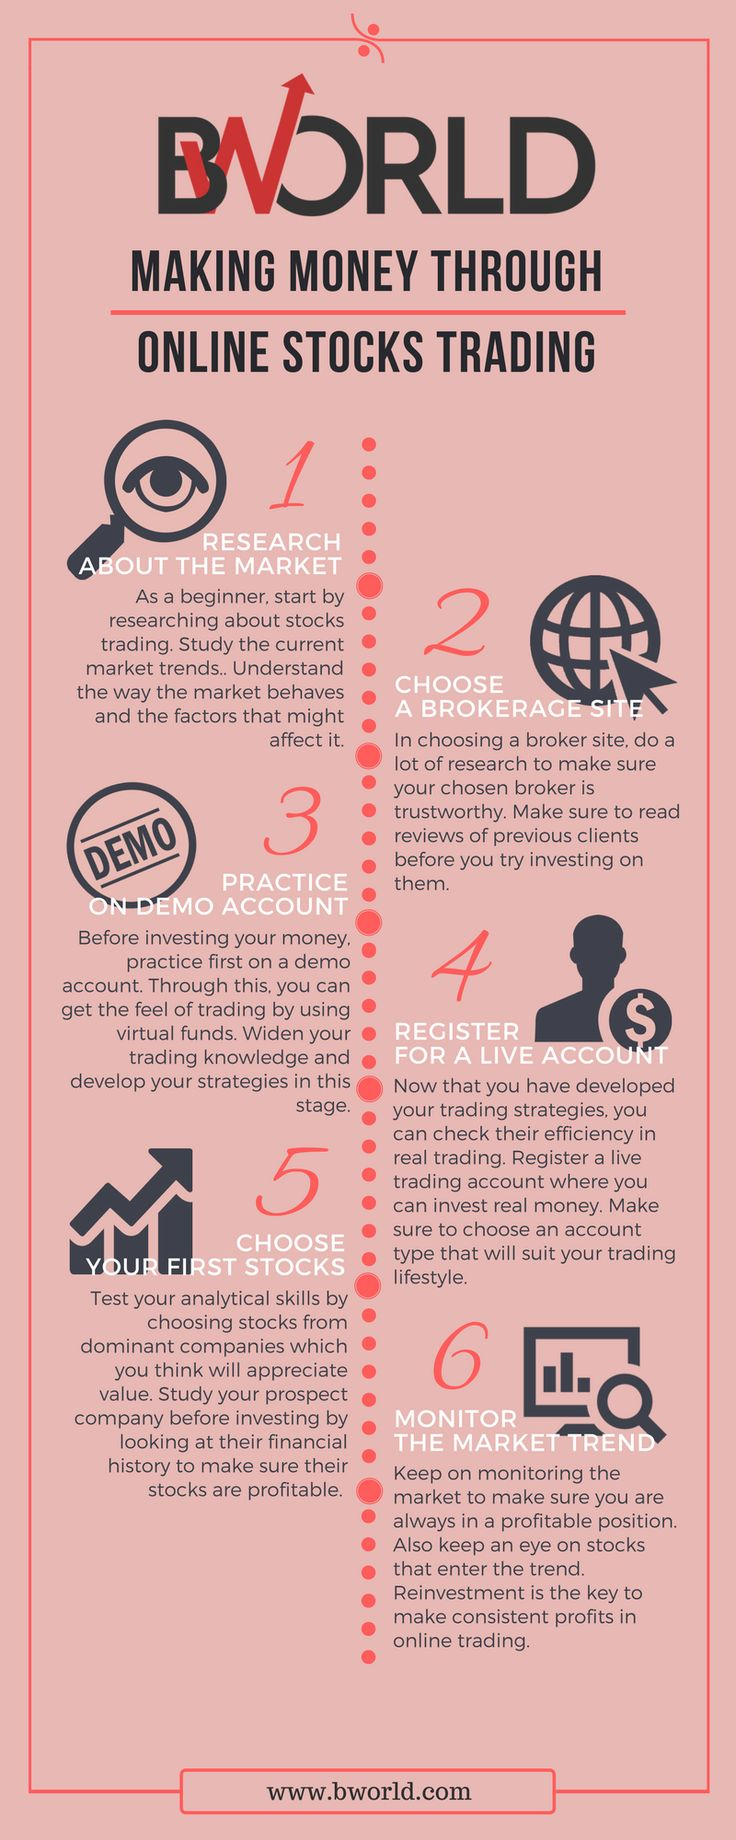 Learn the steps on how to earn money through online stocks trading by understanding this infographic. Read more about it here http://bit.ly/2qJyw7e  Regularly visit http://bworld.com/ for more updates